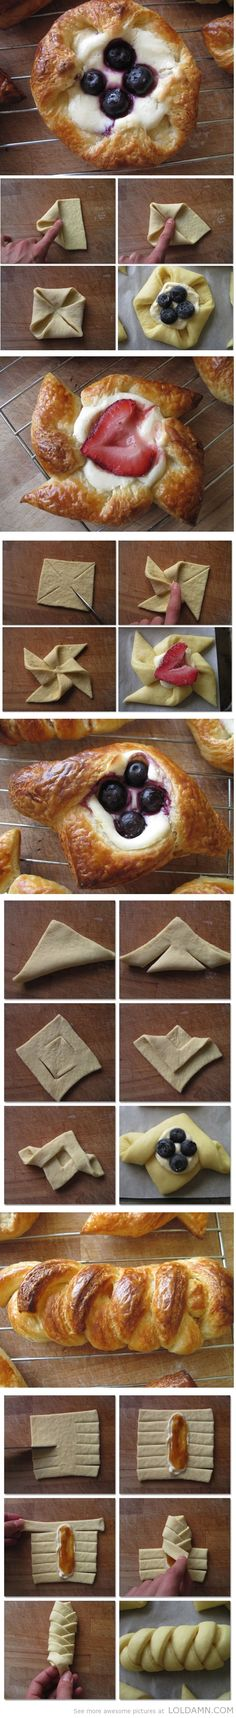 I think that I will try some of these cutting and folding ideas with Aldi puff pastry!